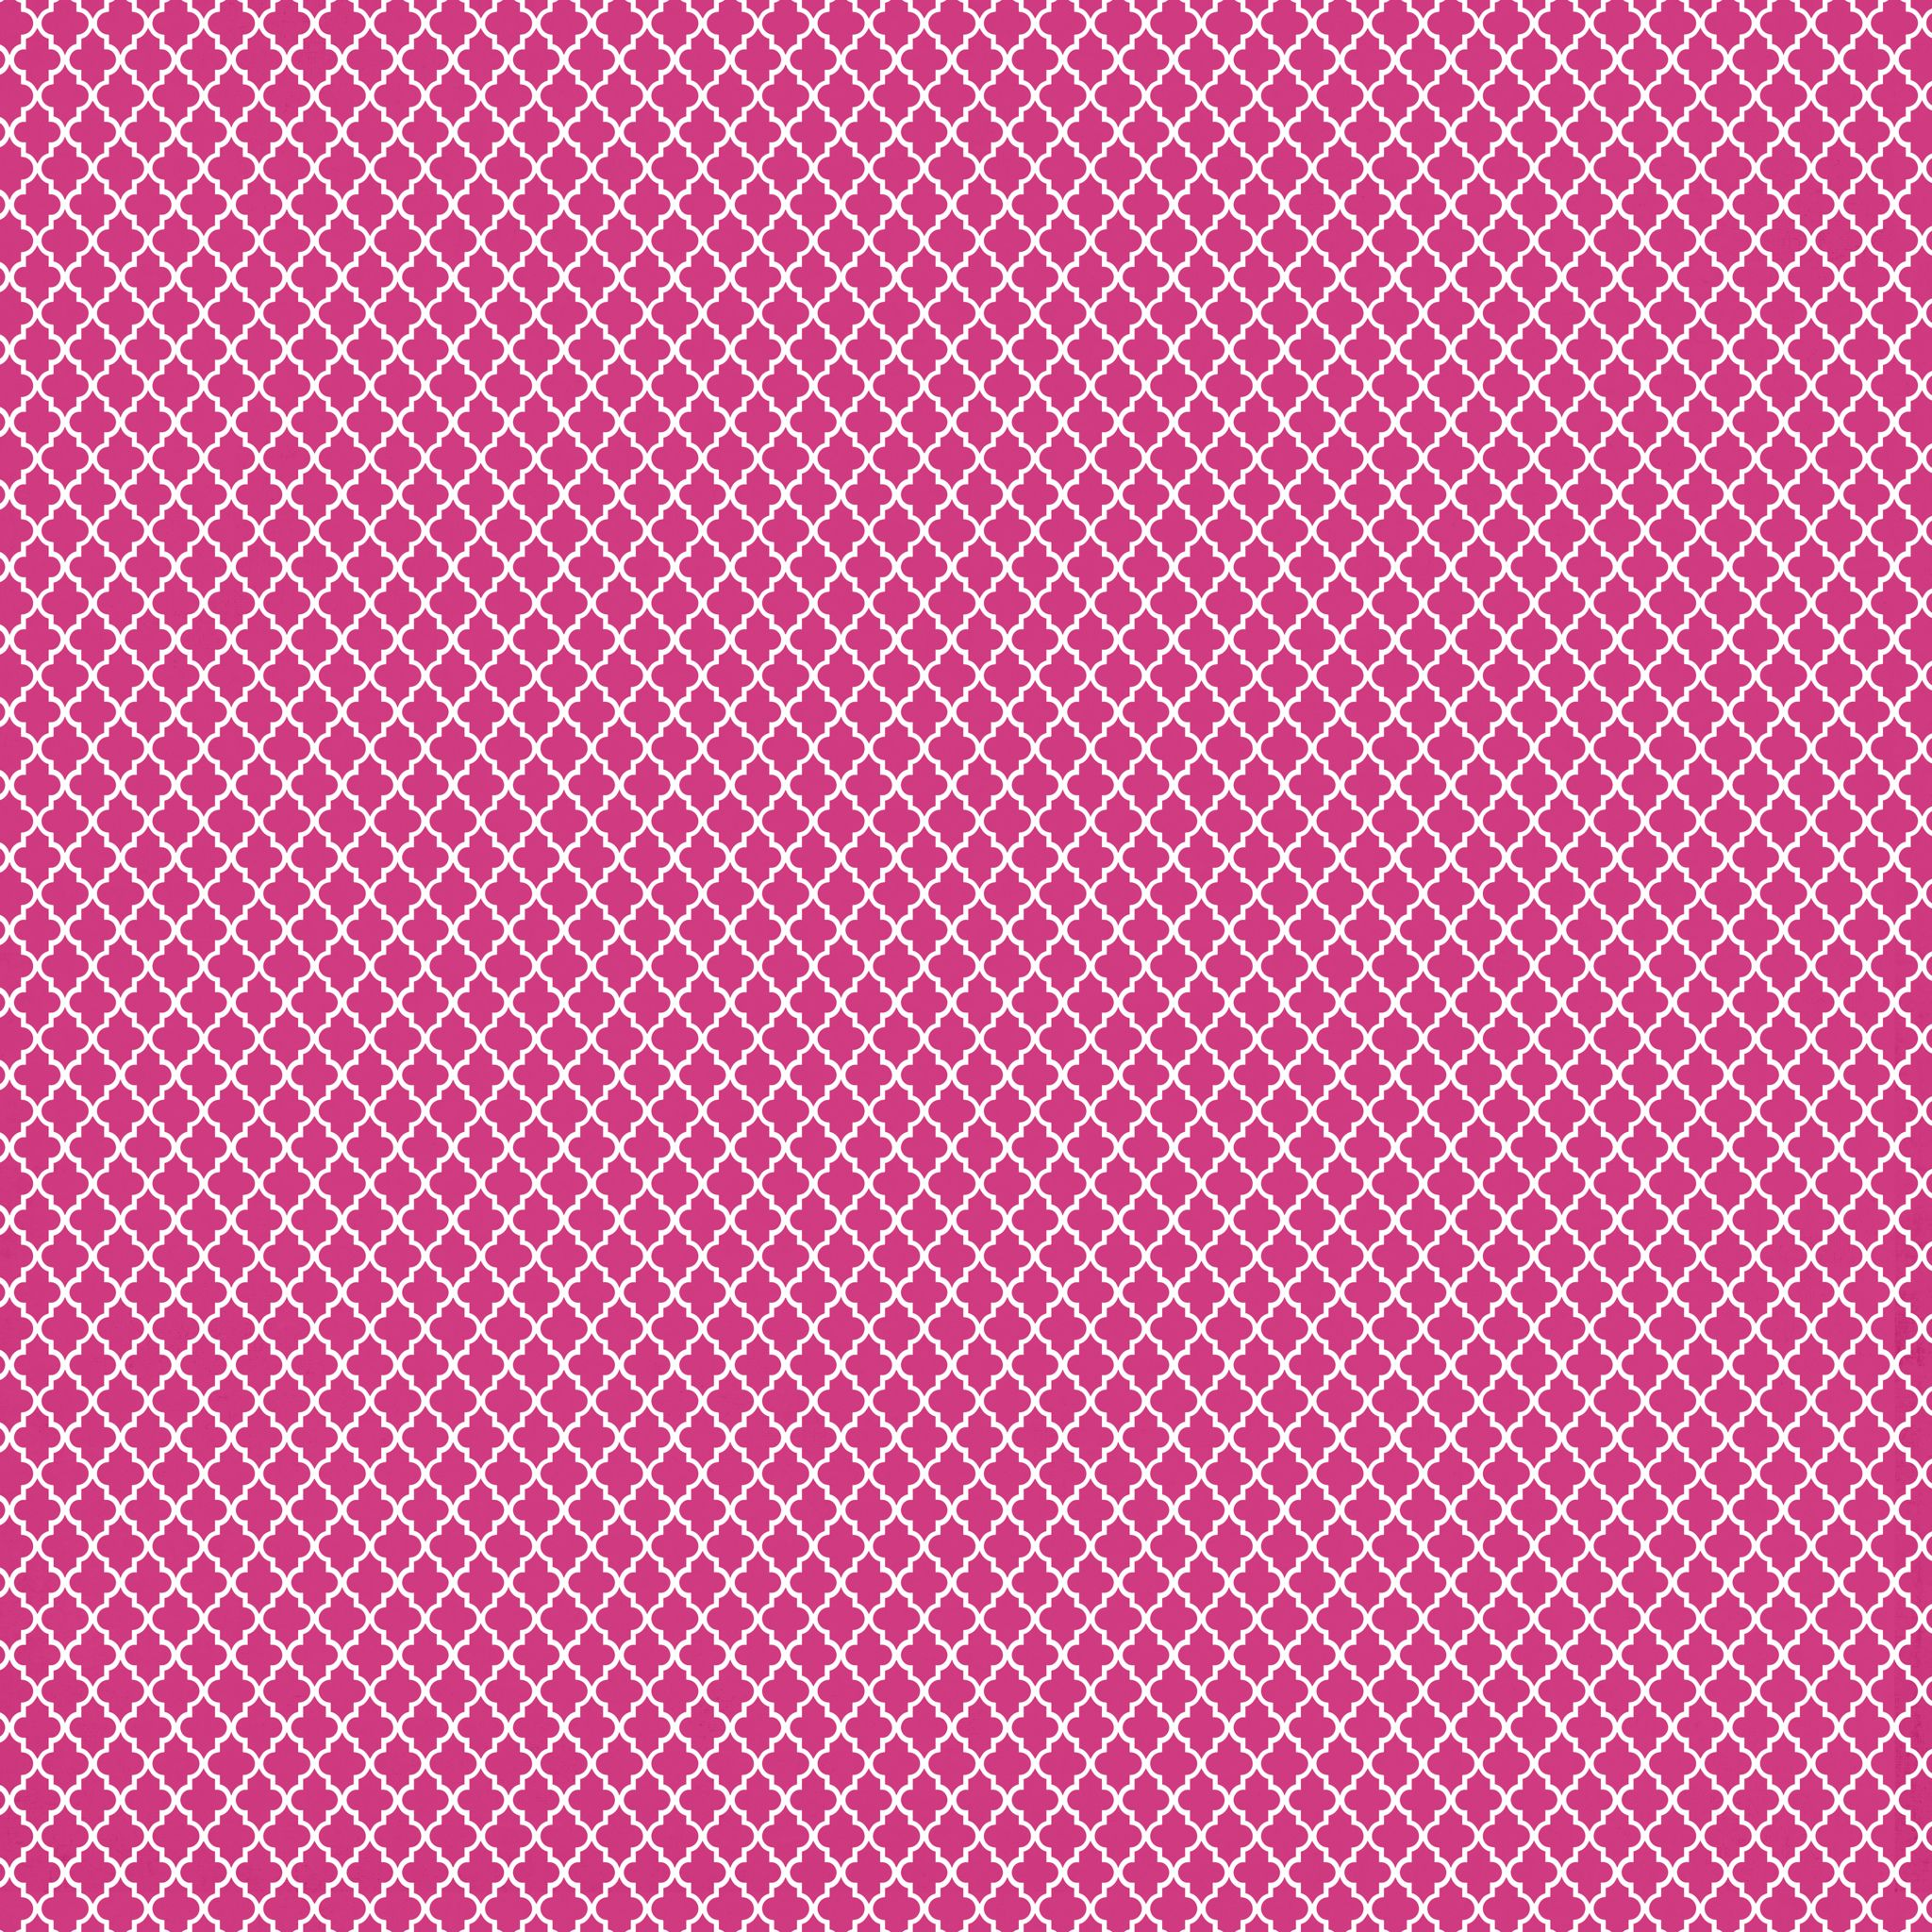 "https://flic.kr/p/c1pn3S | 13-dragon_fruit_BRIGHT_tiny_Moroccan_tile_SOLID_12_and_a_half_inch_SQ_350dpi_melstampz | This is a free printable: a digital patterned paper that I made to share with you. It's high resolution 350 dpi for print quality.  :-) Please link if you use this: <a href=""http://melstampz.blogspot.ca/"" rel=""nofollow"">melstampz.blogspot.ca/</a>  (guidelines for use)  A-okay:  --You can change my stuff however you like (the colour and so on, whatever you can imagine!) Please…"